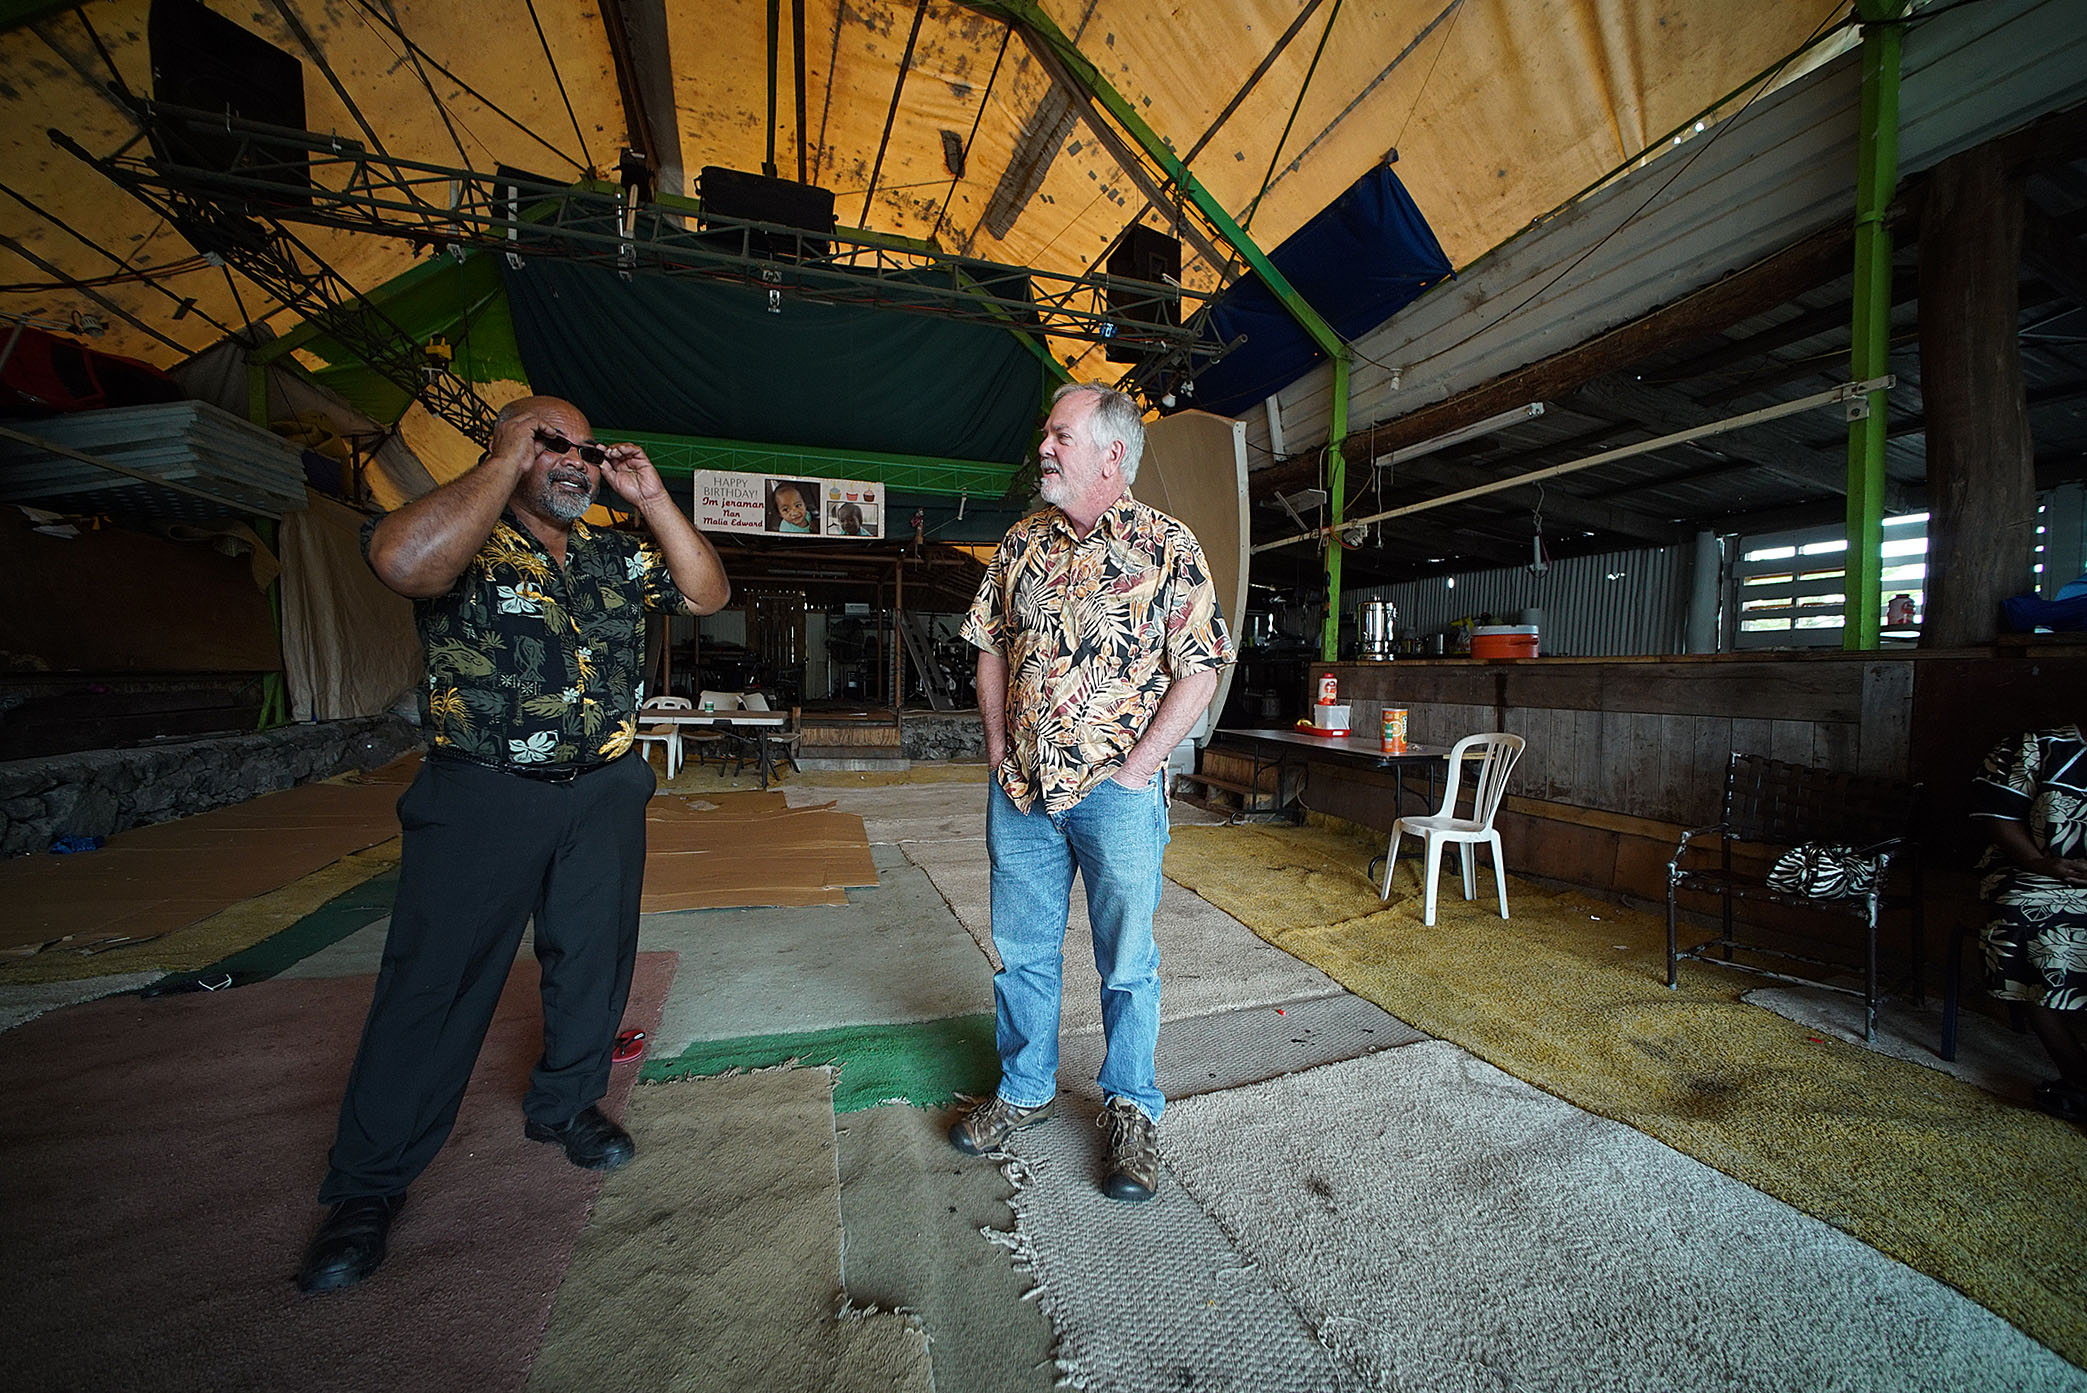 <p>Jonithen Jackson, left, with state Rep. Richard Creagan, at Jackson&#8217;s studio and gathering place on the Big Island. Creagan is a former Peace Corps volunteer in the Marshall Islands.</p>